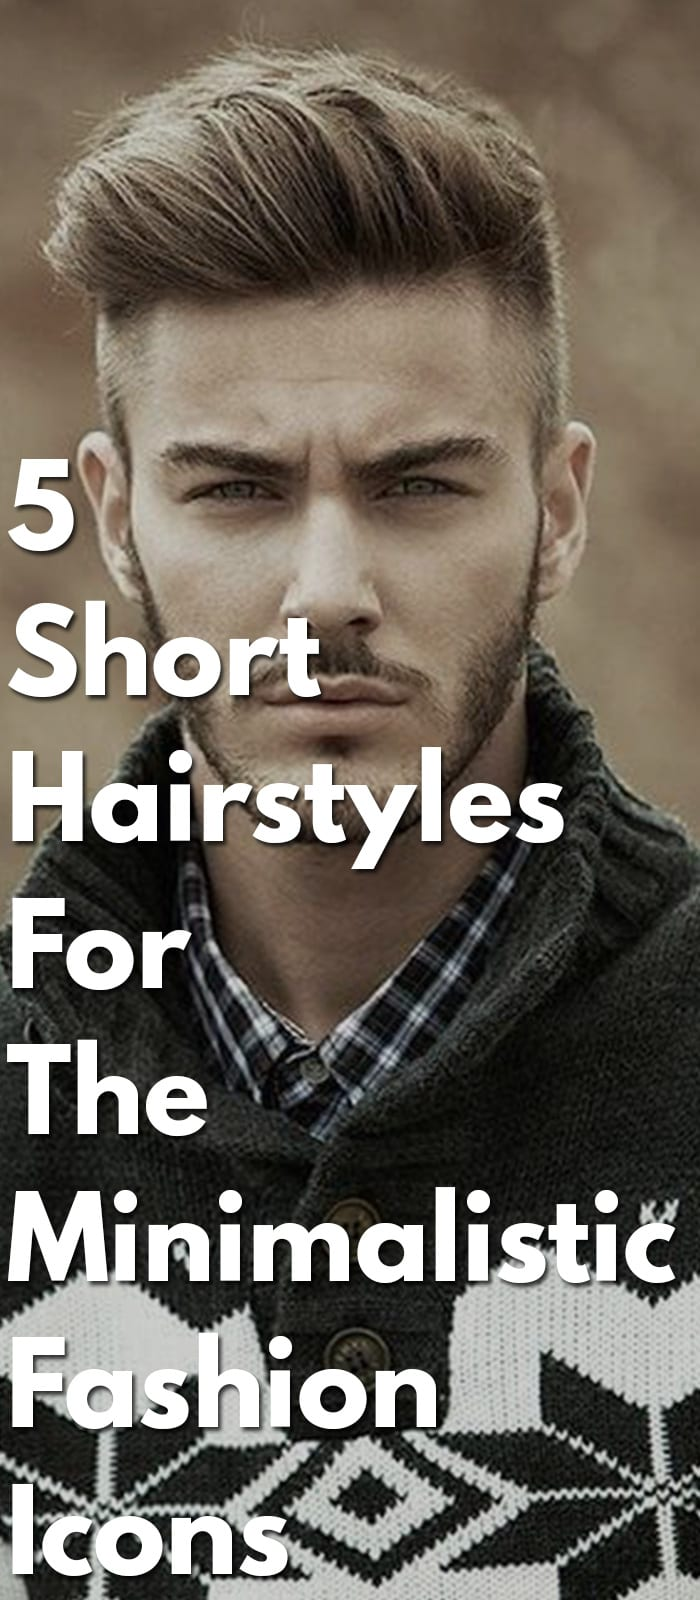 5-Short-Hairstyles-For-The-Minimalistic-Fashion-Icons.